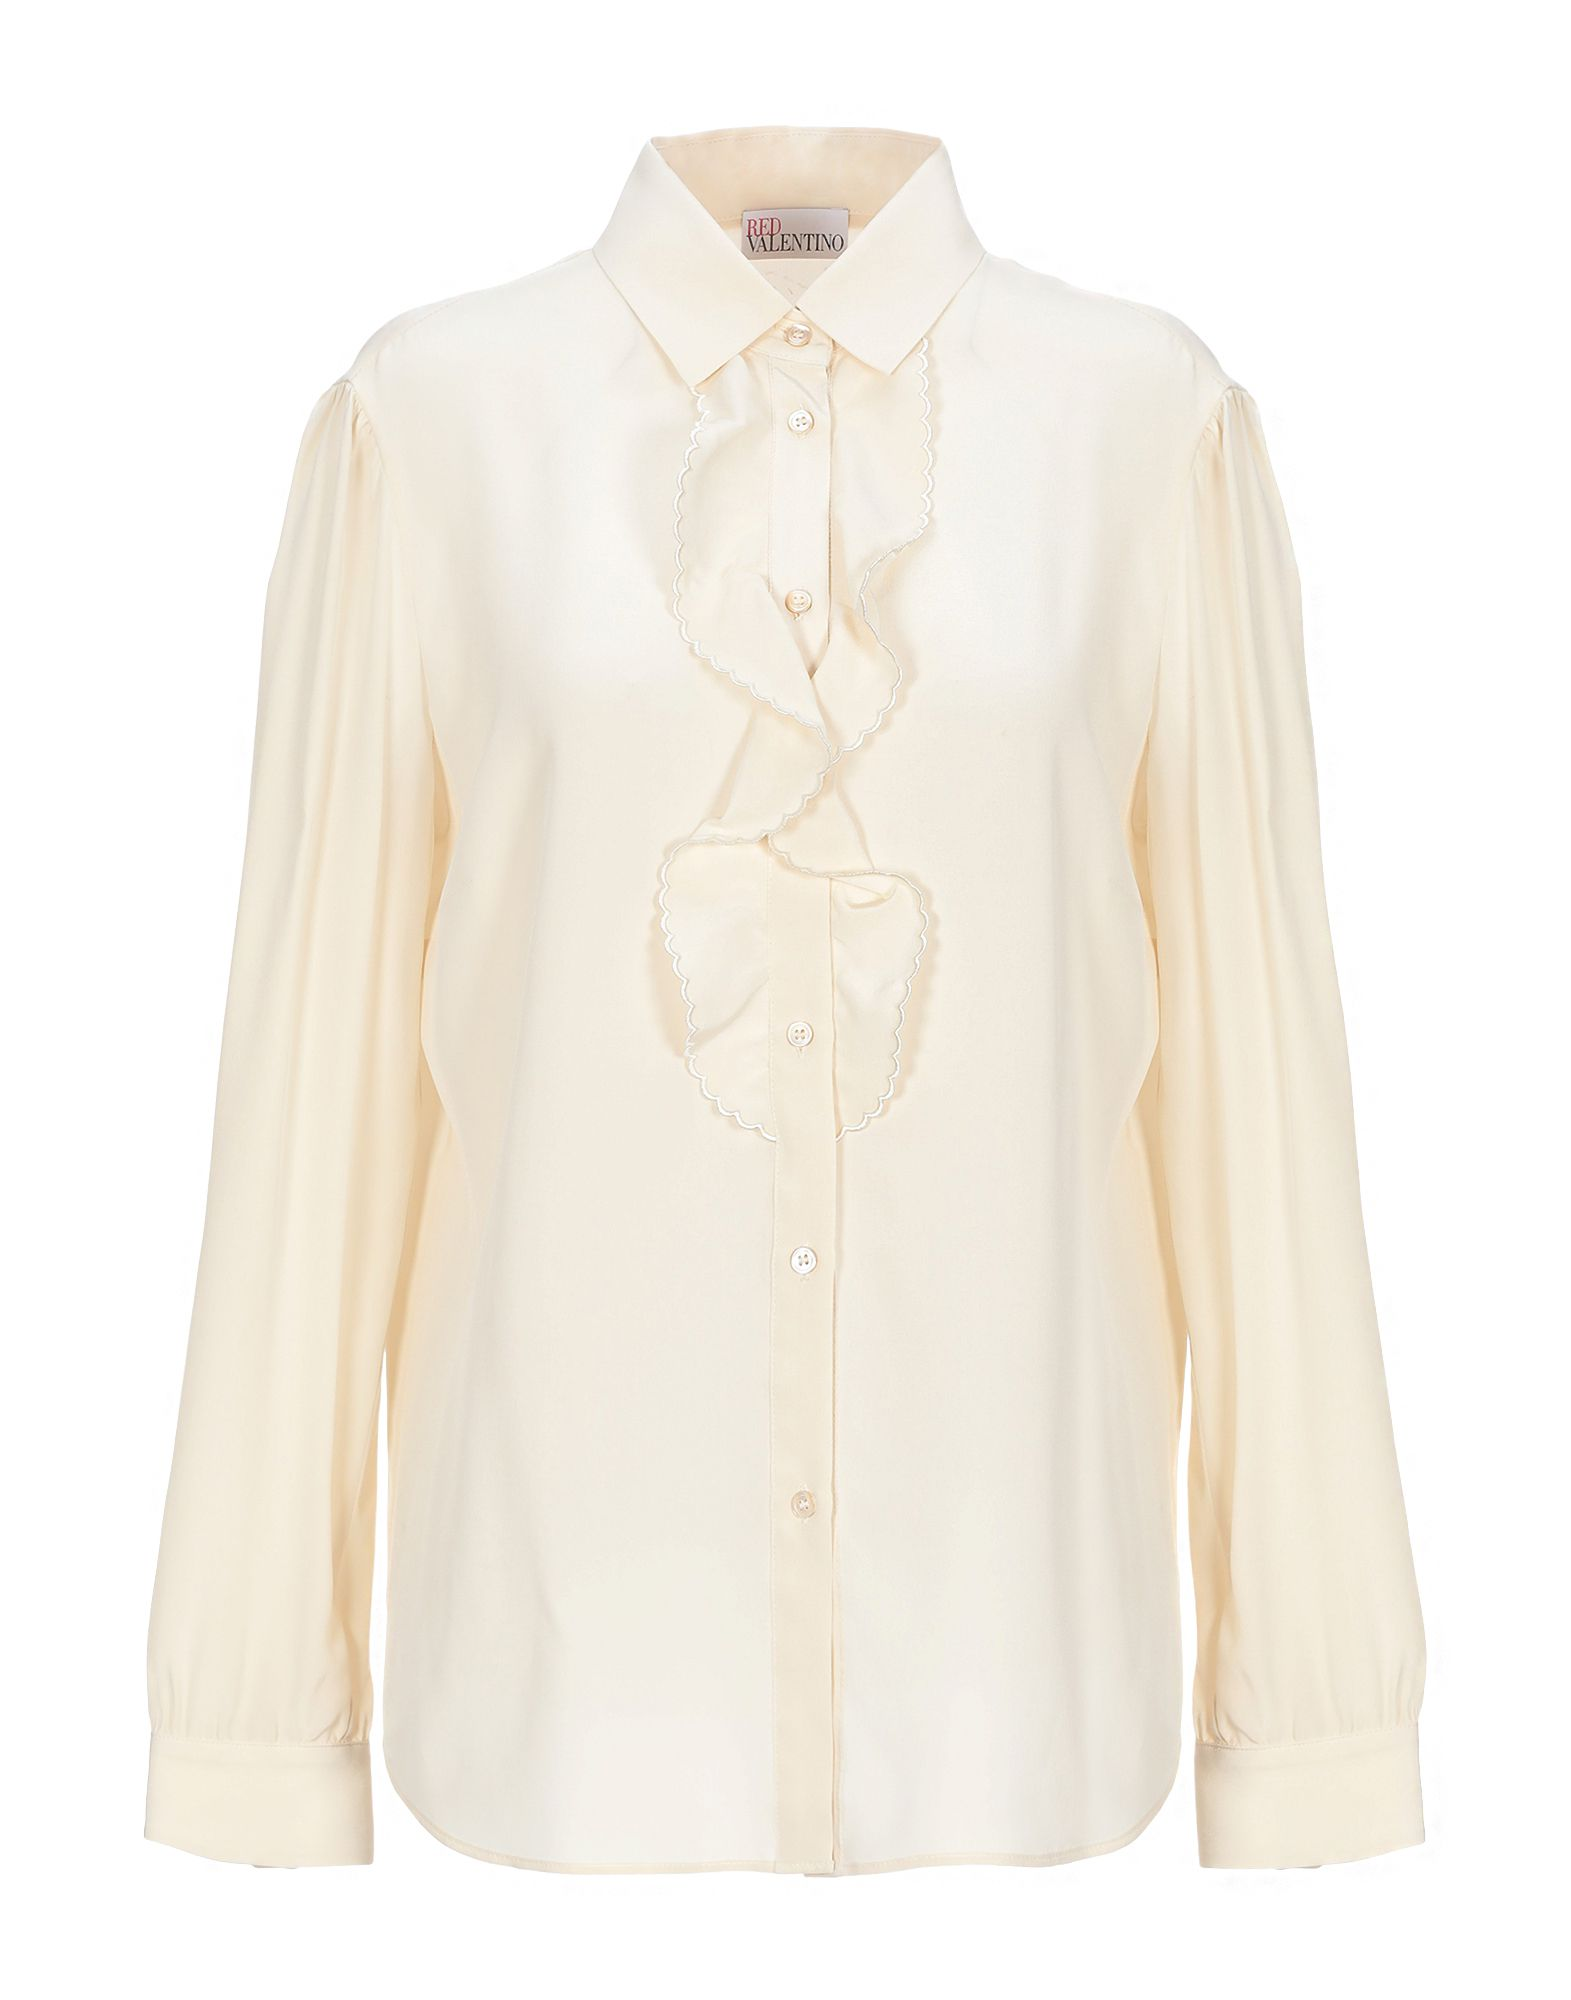 Camicie E bluse bluse In Seta rossovalentino donna - 38854992MM  die beste Auswahl an